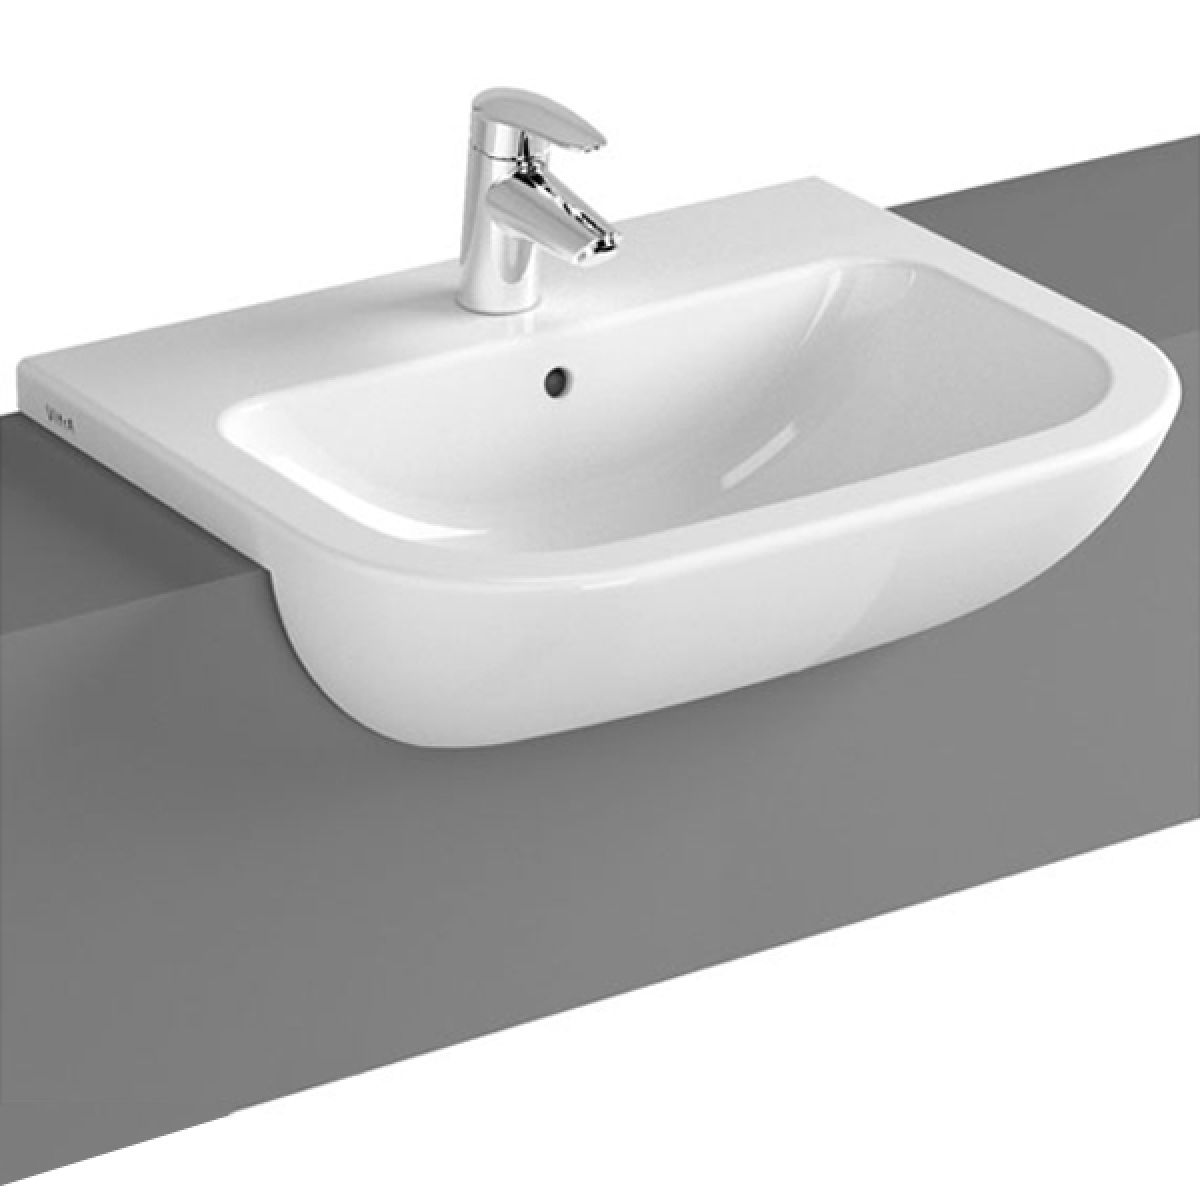 Vitra S20 Semi Countertop Basin 550mm